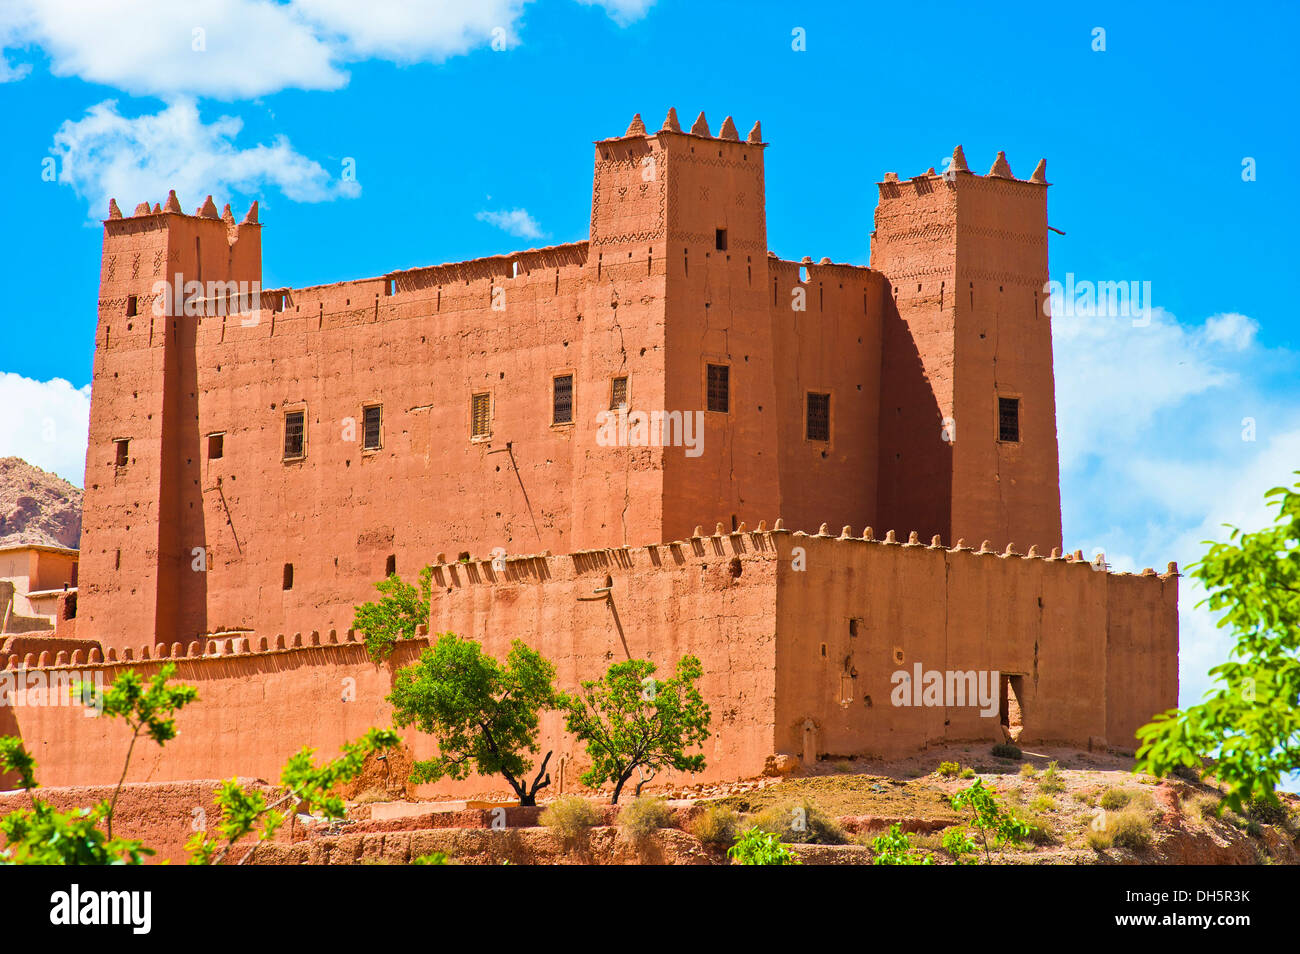 Restored kasbah, mud fortress, castle of the Berber people, Tighremt, Dades Valley, Southern Morocco, Morocco, Africa Stock Photo